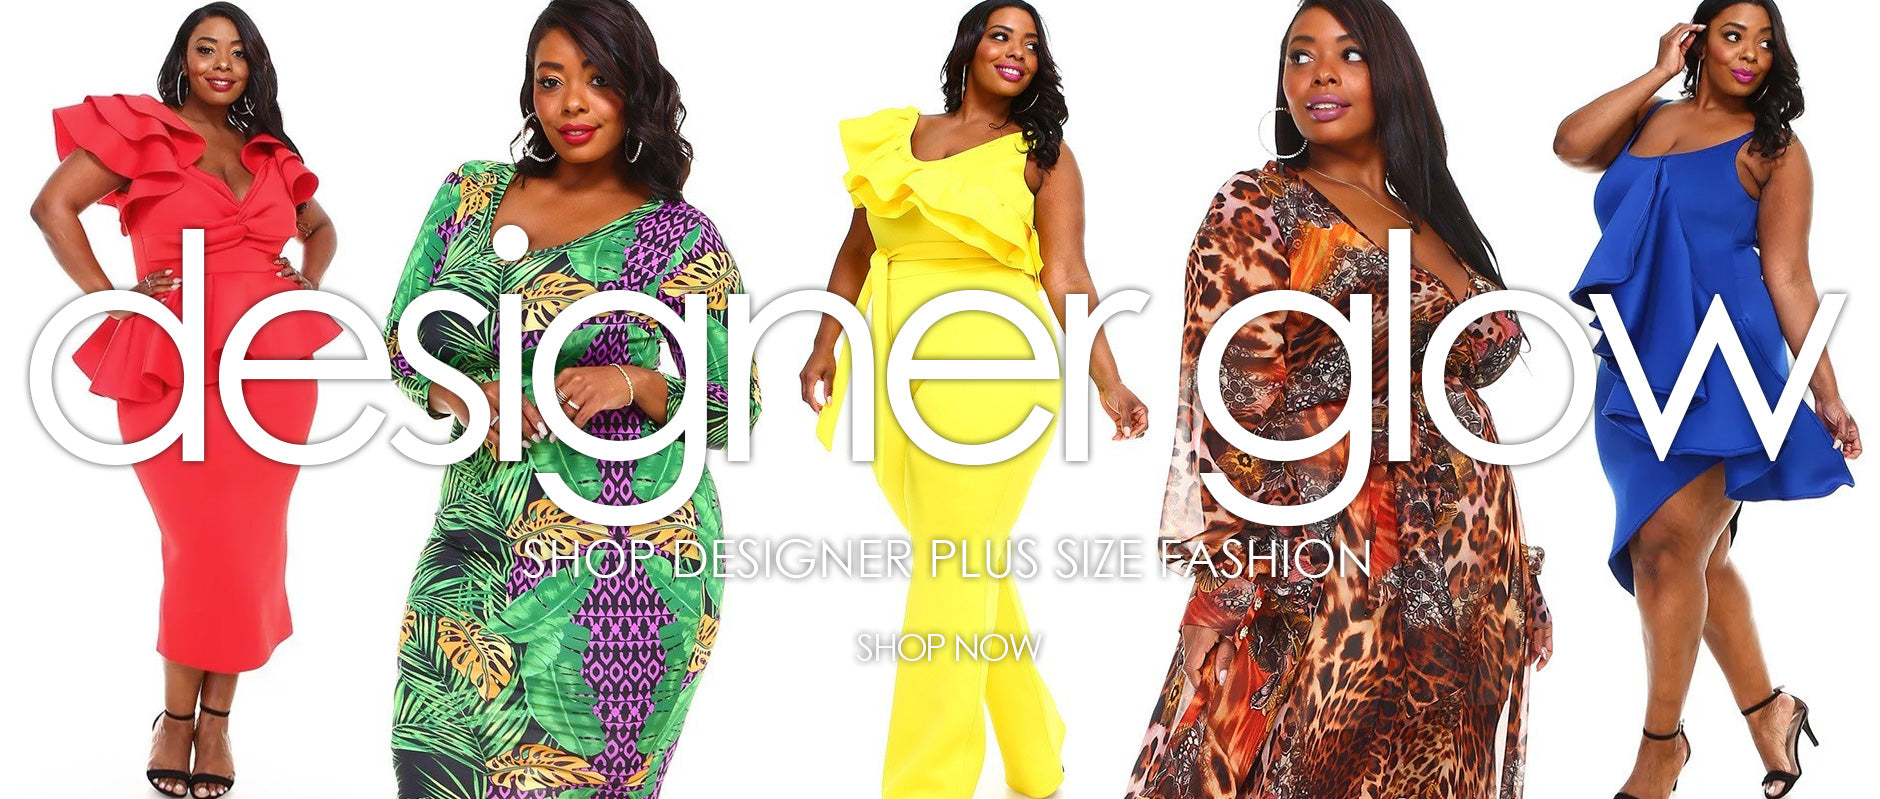 2239736c6e6 Welcome to Plussizefix - Shop Plus Size Clothing